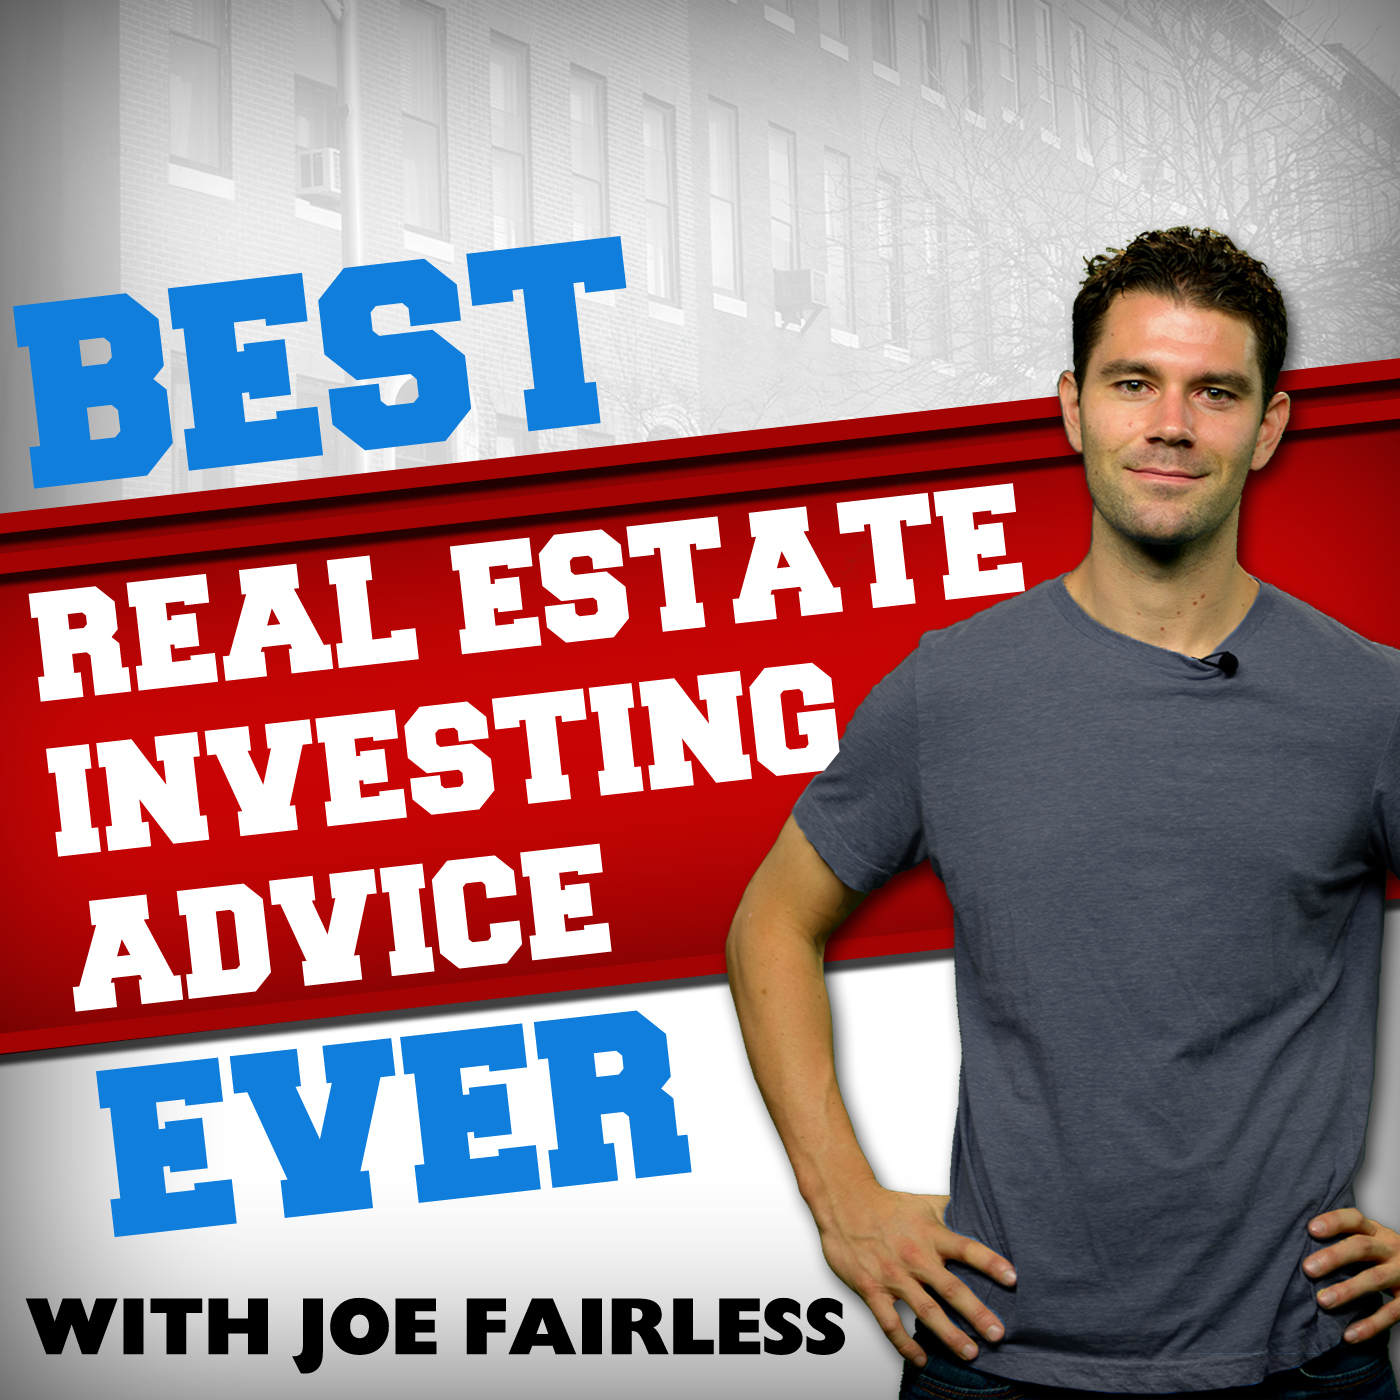 JF136: The Golden 4-Plex: Here's How Just ONE Purchase Can Build a Company.